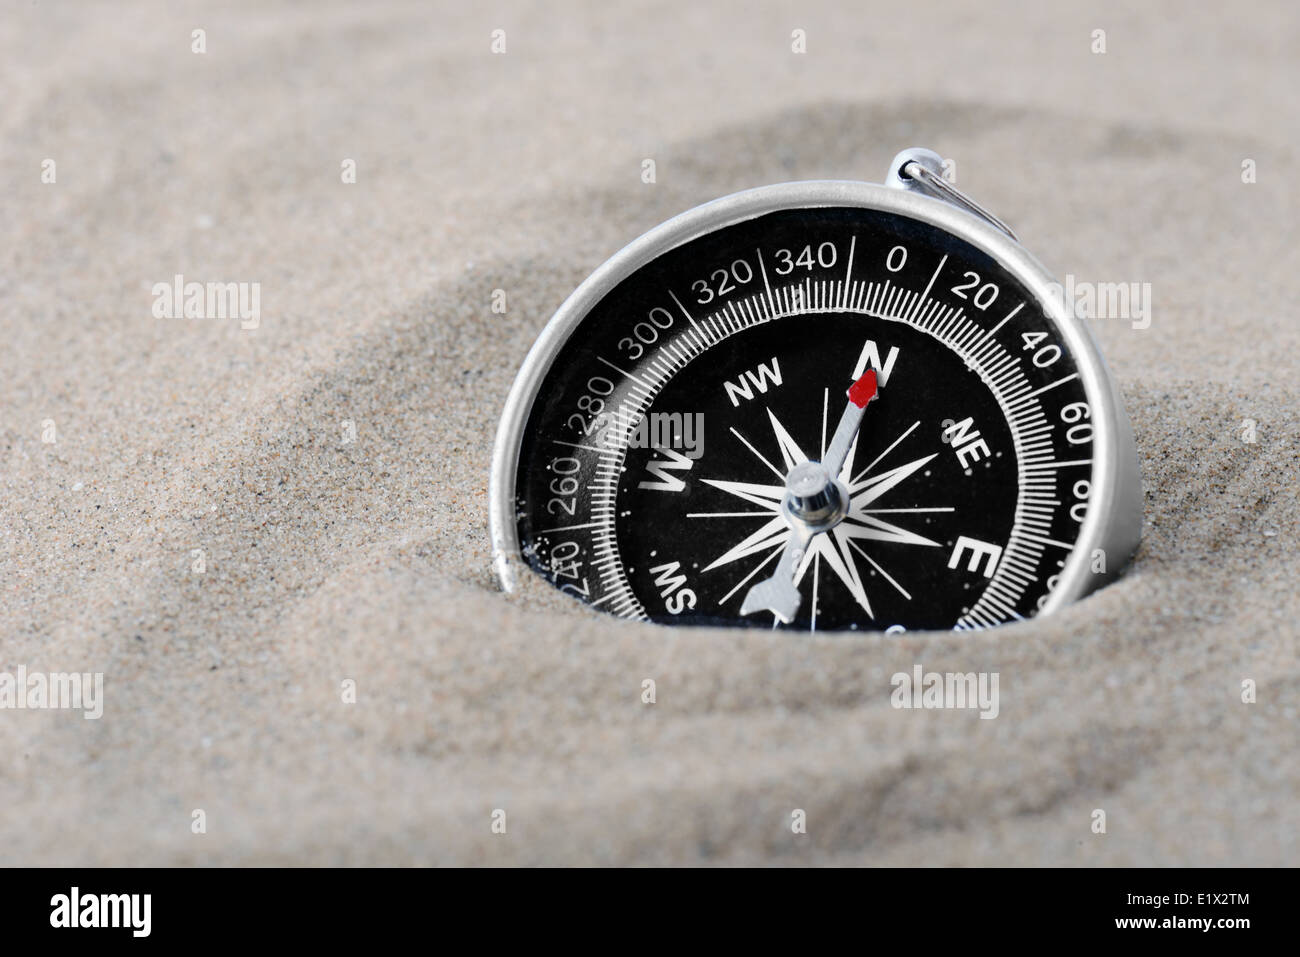 a compass part buried in sand with needle pointing north - Stock Image